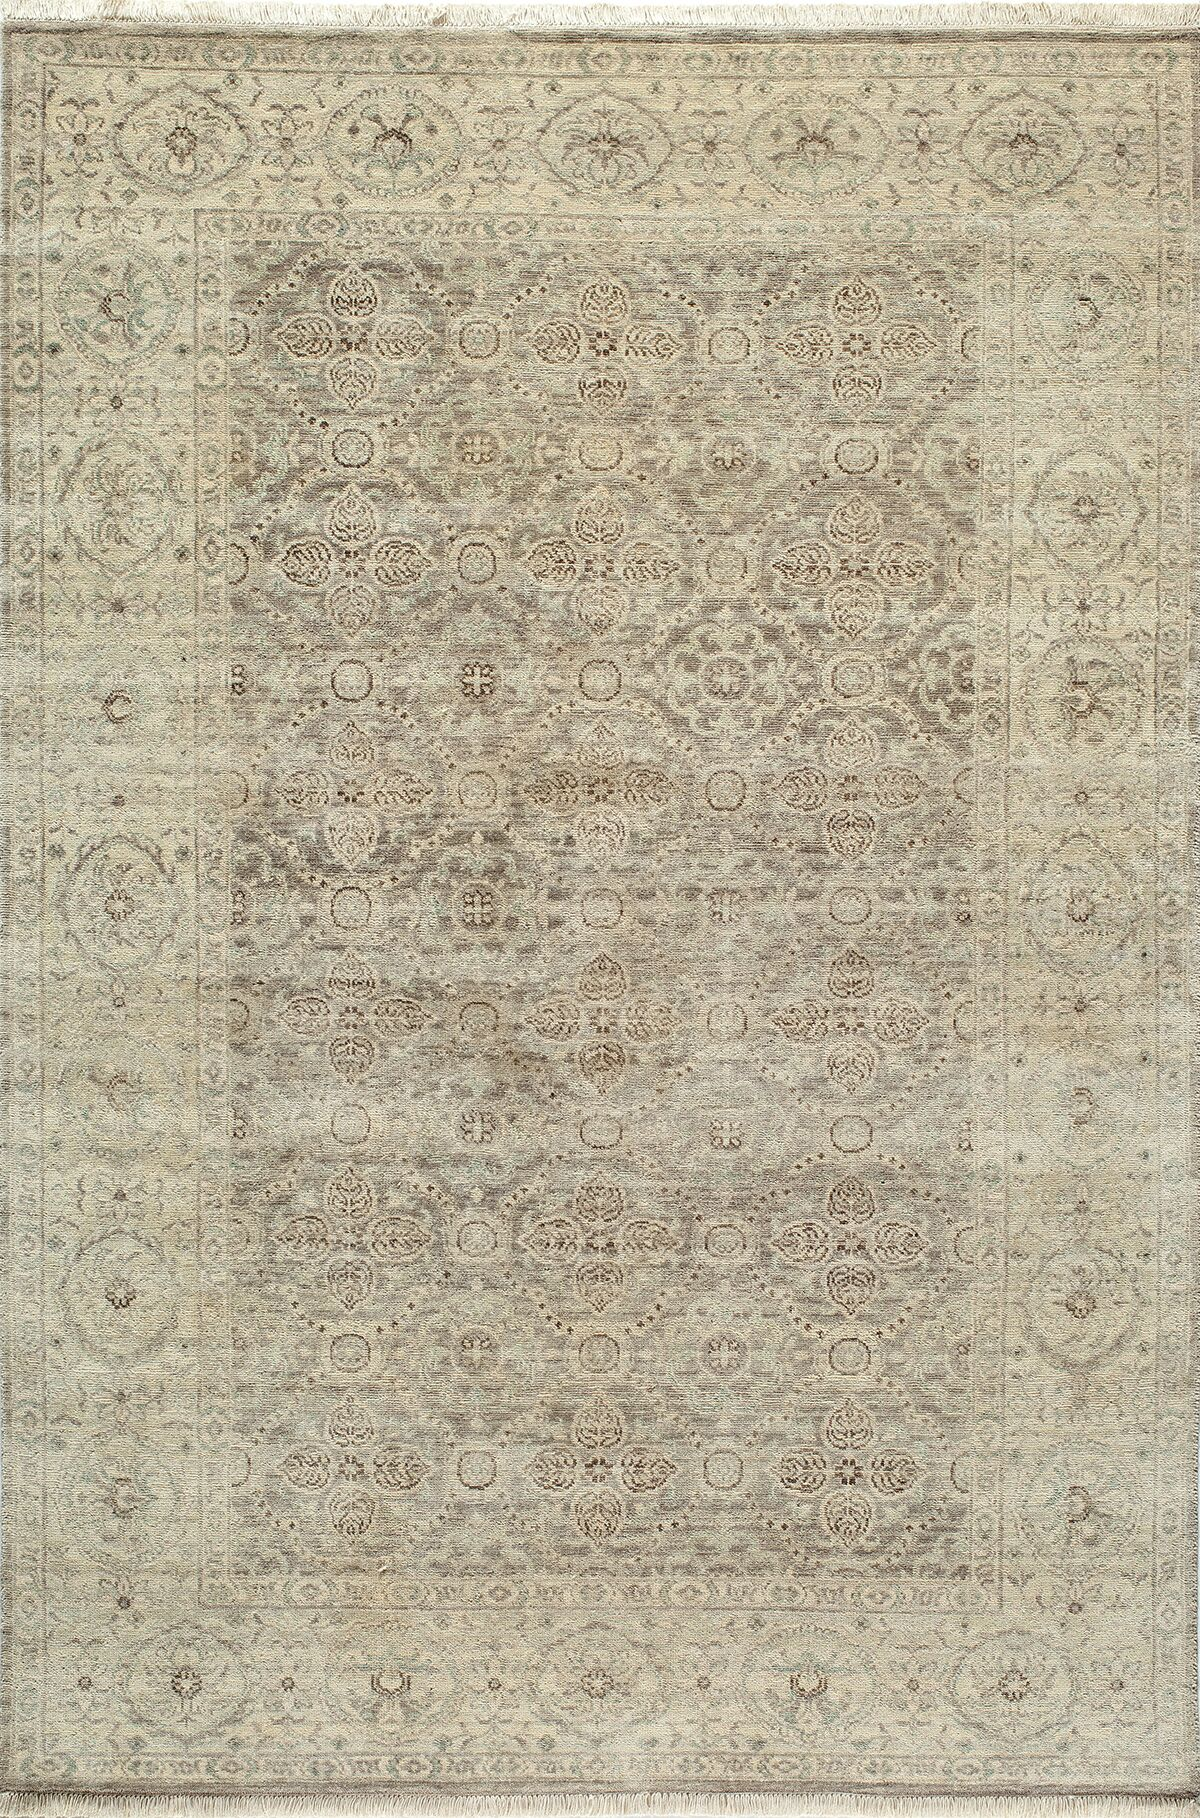 McDonough Hand-Hooked Taupe Area Rug Rug Size: Rectangle 9'6